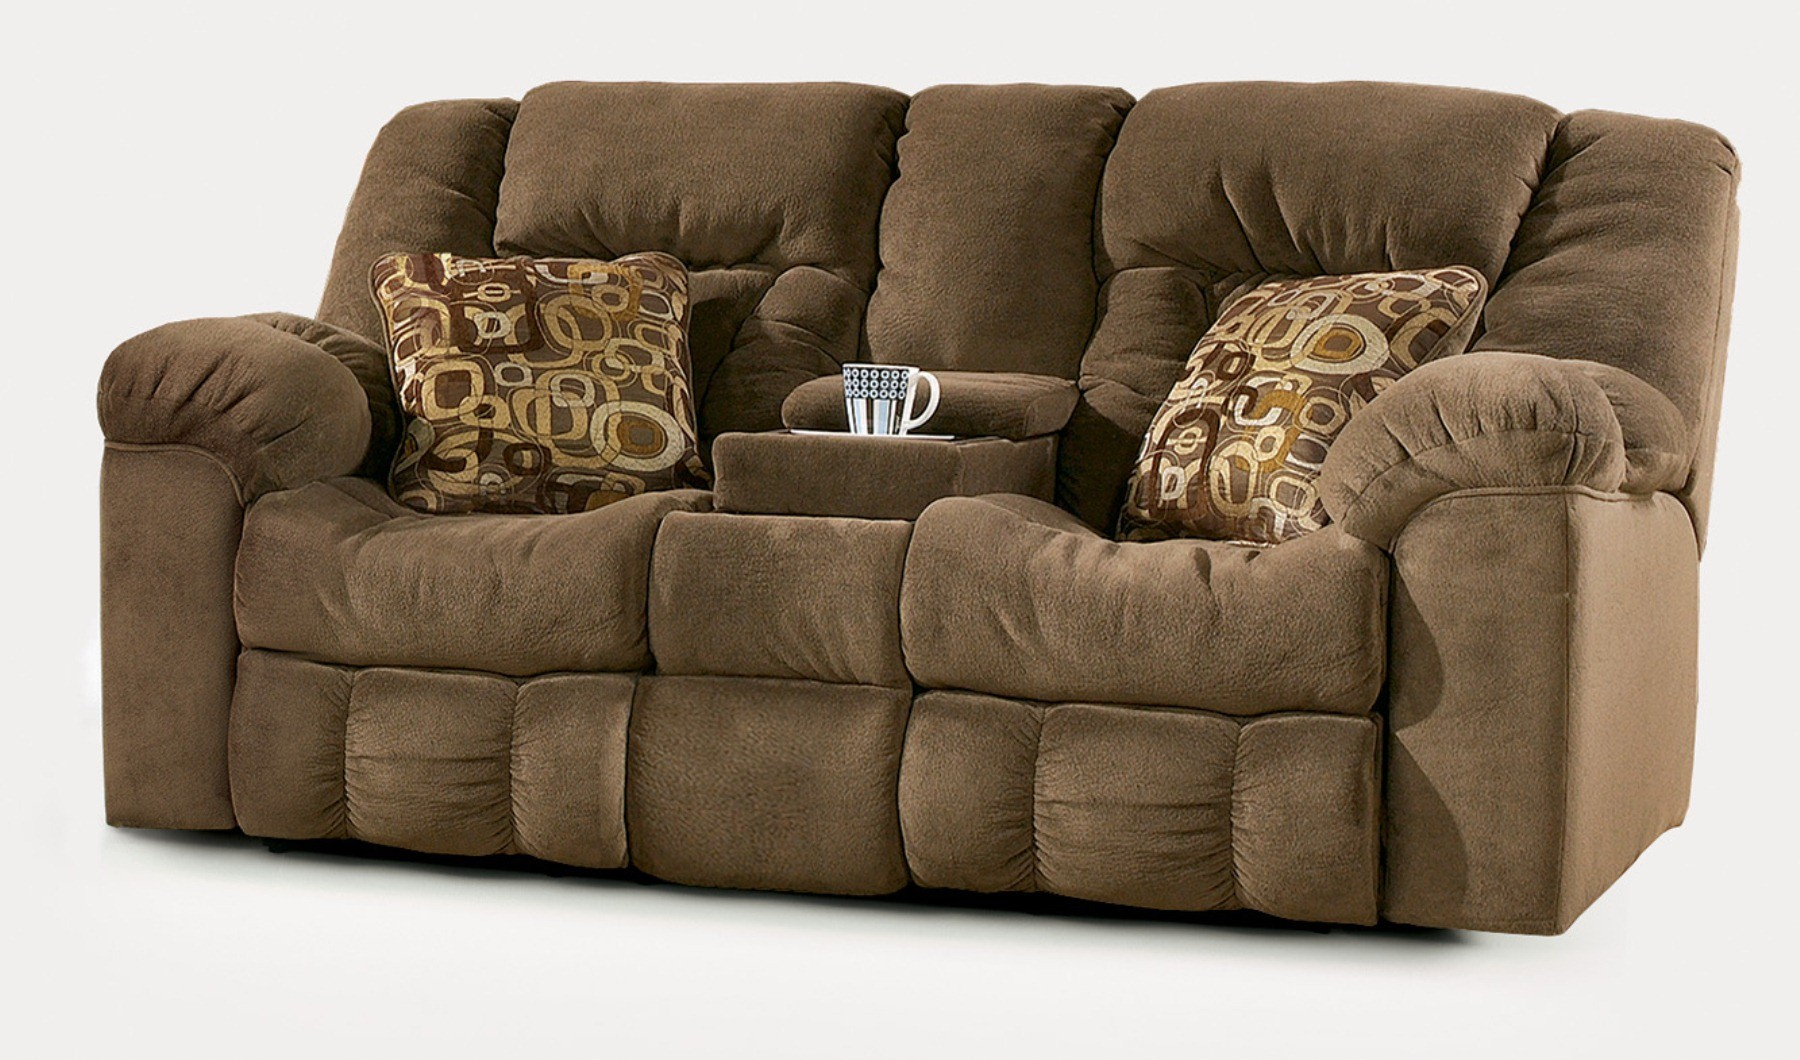 Furniture Living Room Furniture Recliner Brown Loveseat Double Recliner